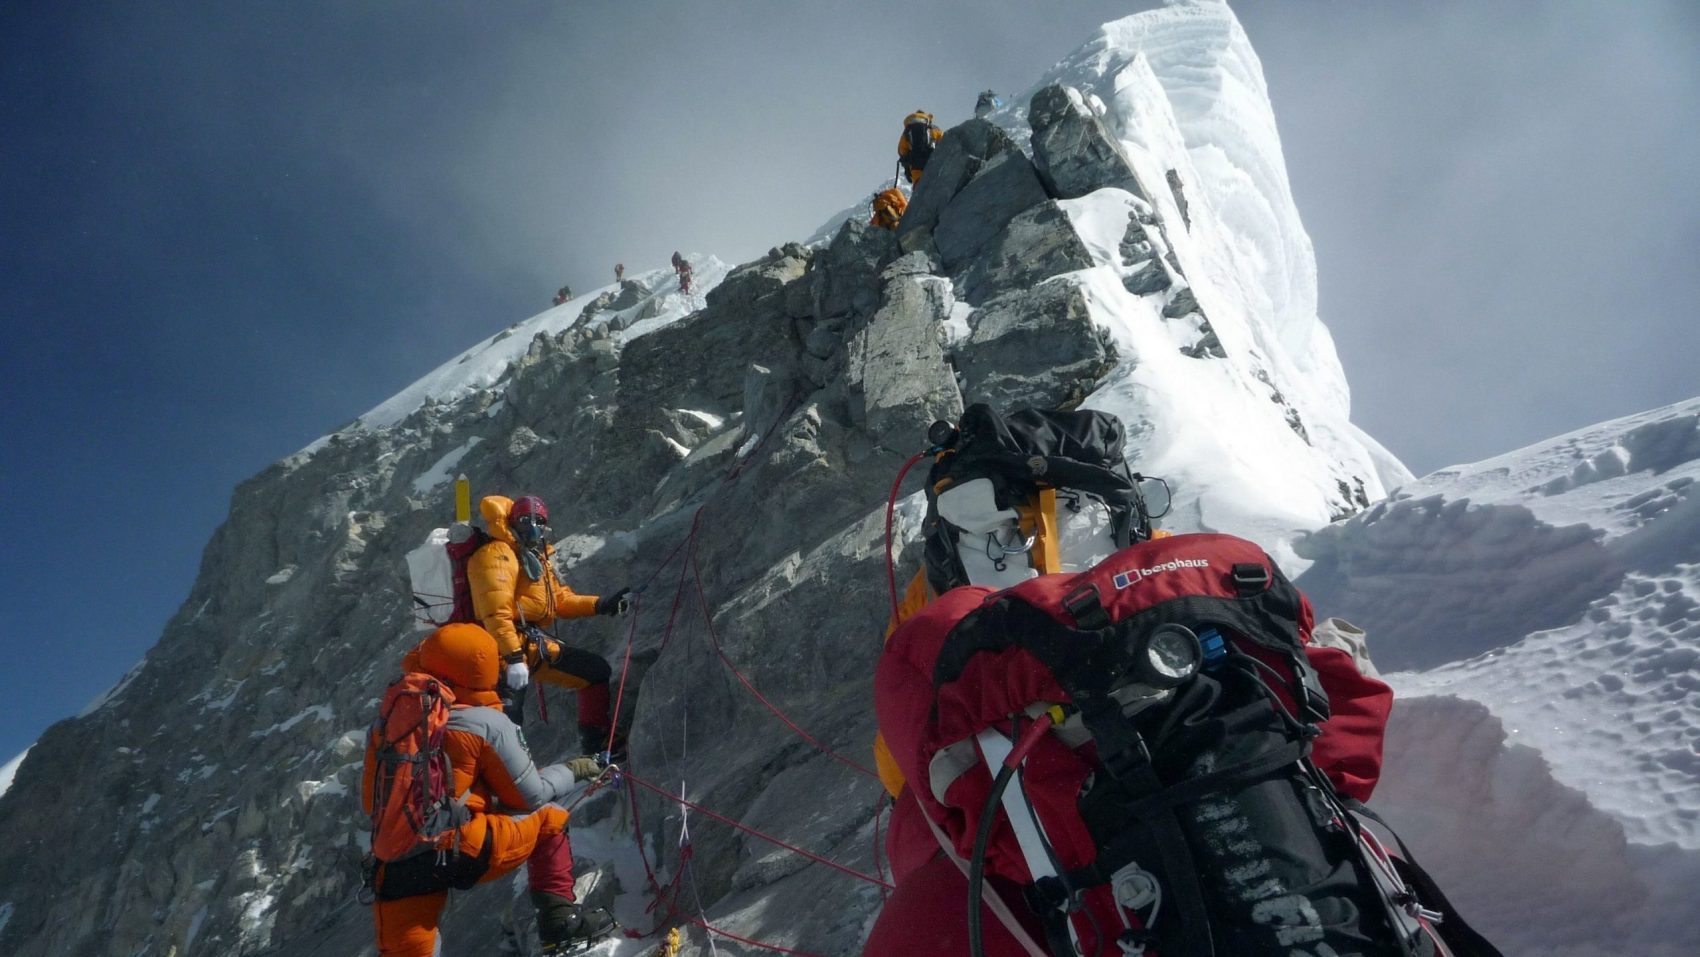 Facts about Everest